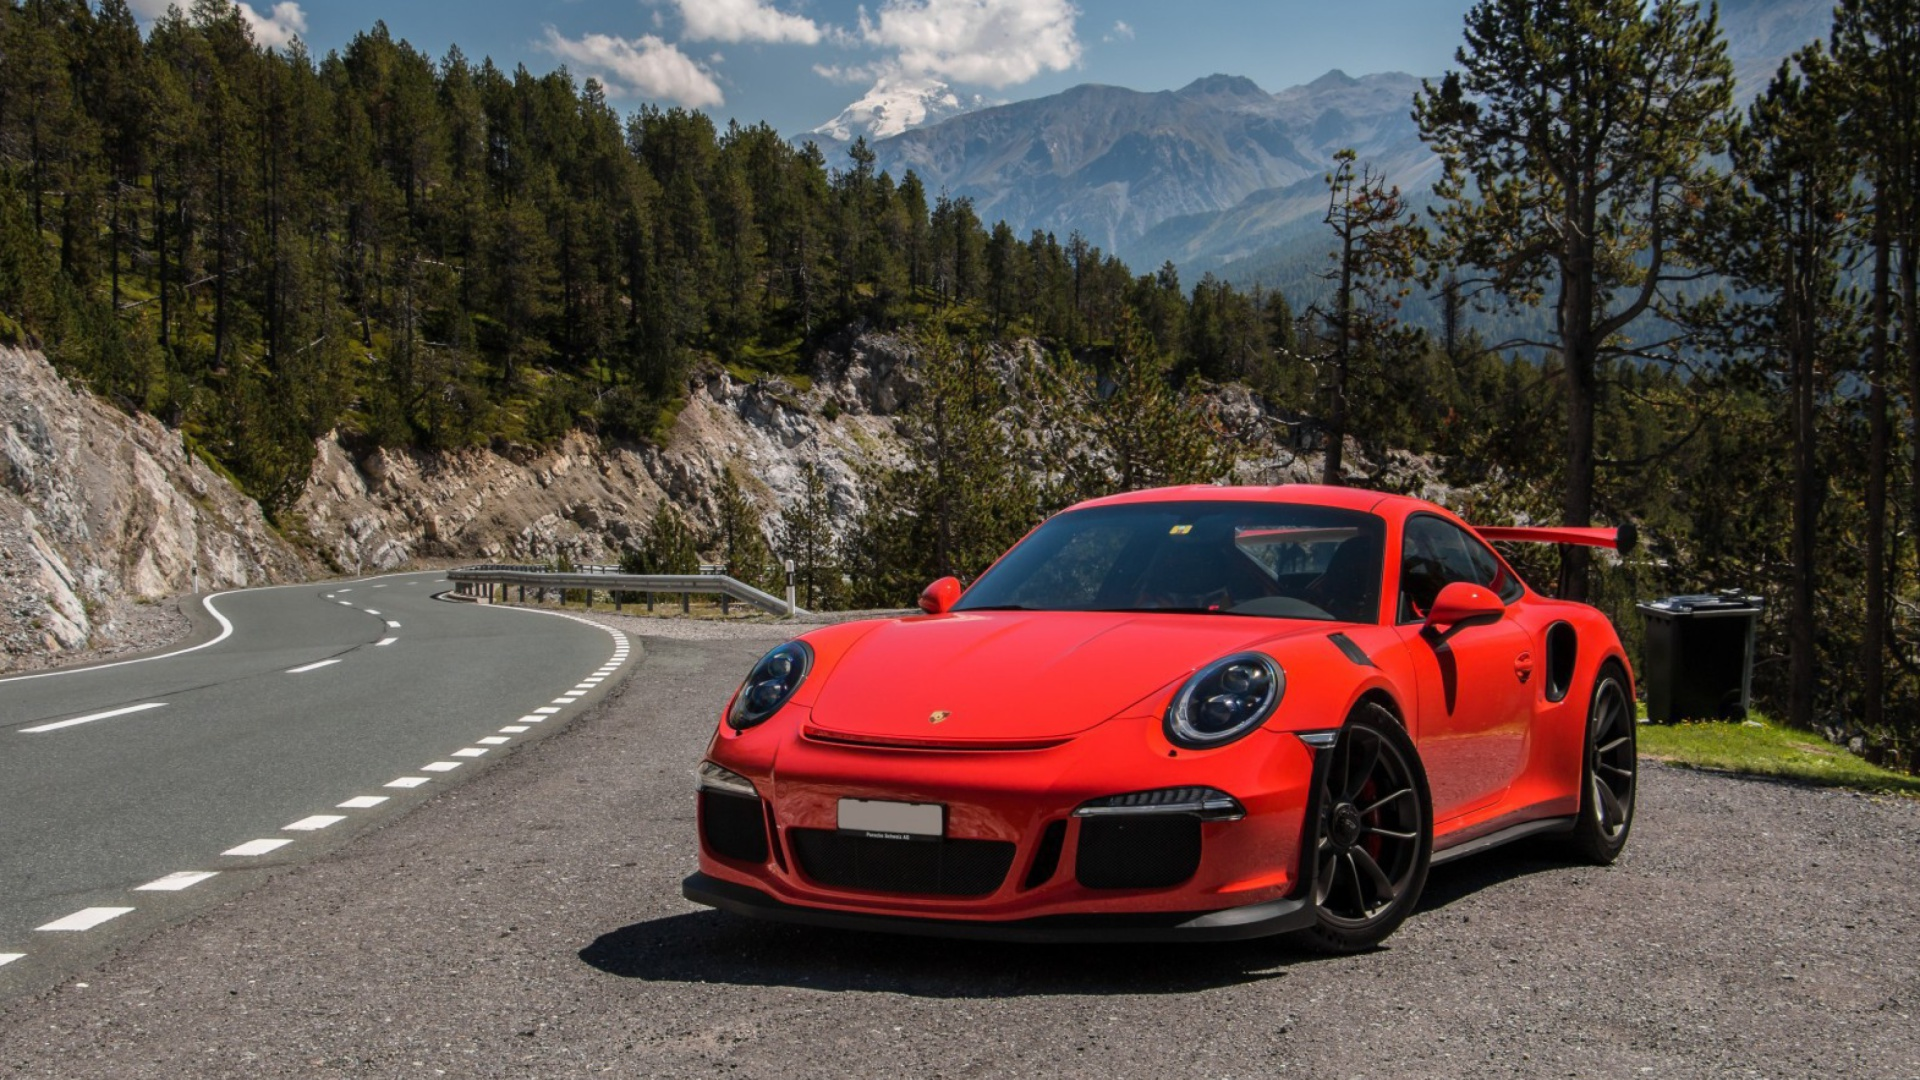 Porsche 911 GT3 RS Wallpaper For Desktop 1920x1080 Full HD